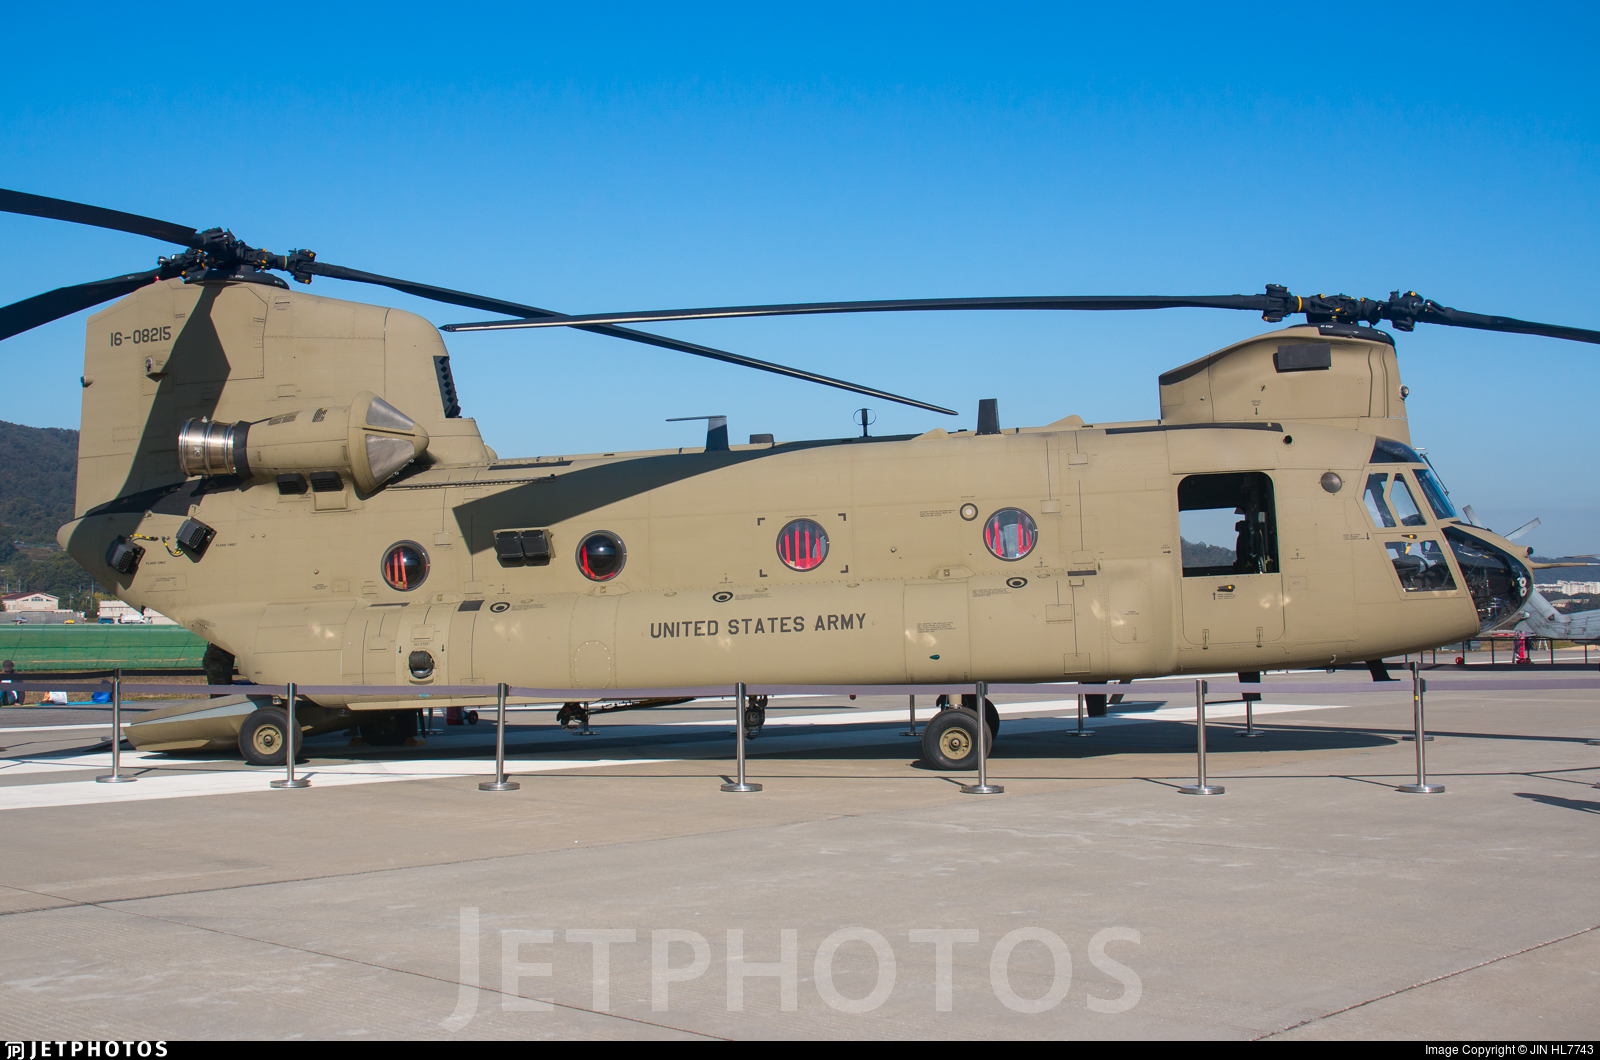 16-08215 - Boeing CH-47F Chinook - United States - US Army